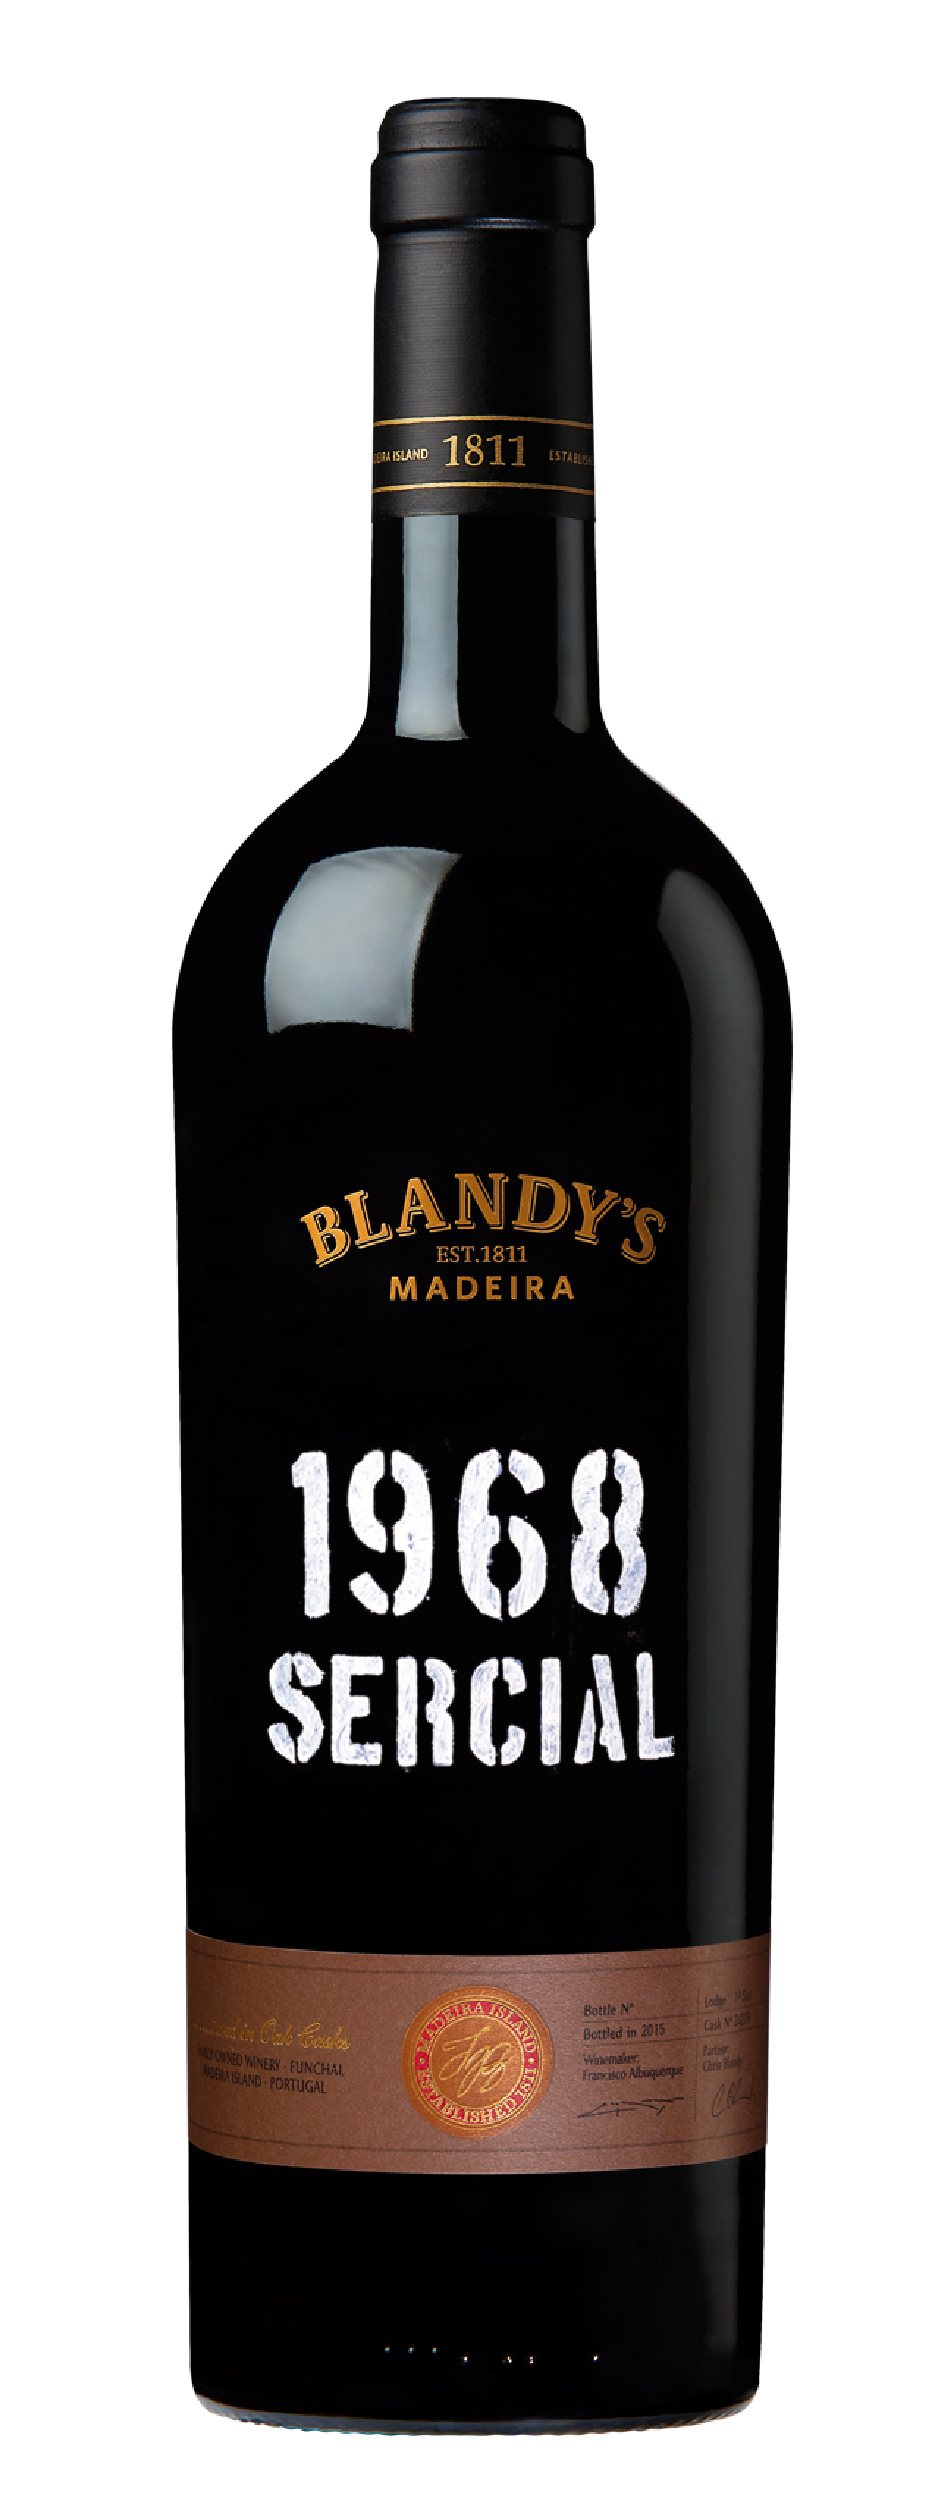 Product Image for BLANDY'S VINTAGE SERCIAL 1968 - MAGNUM